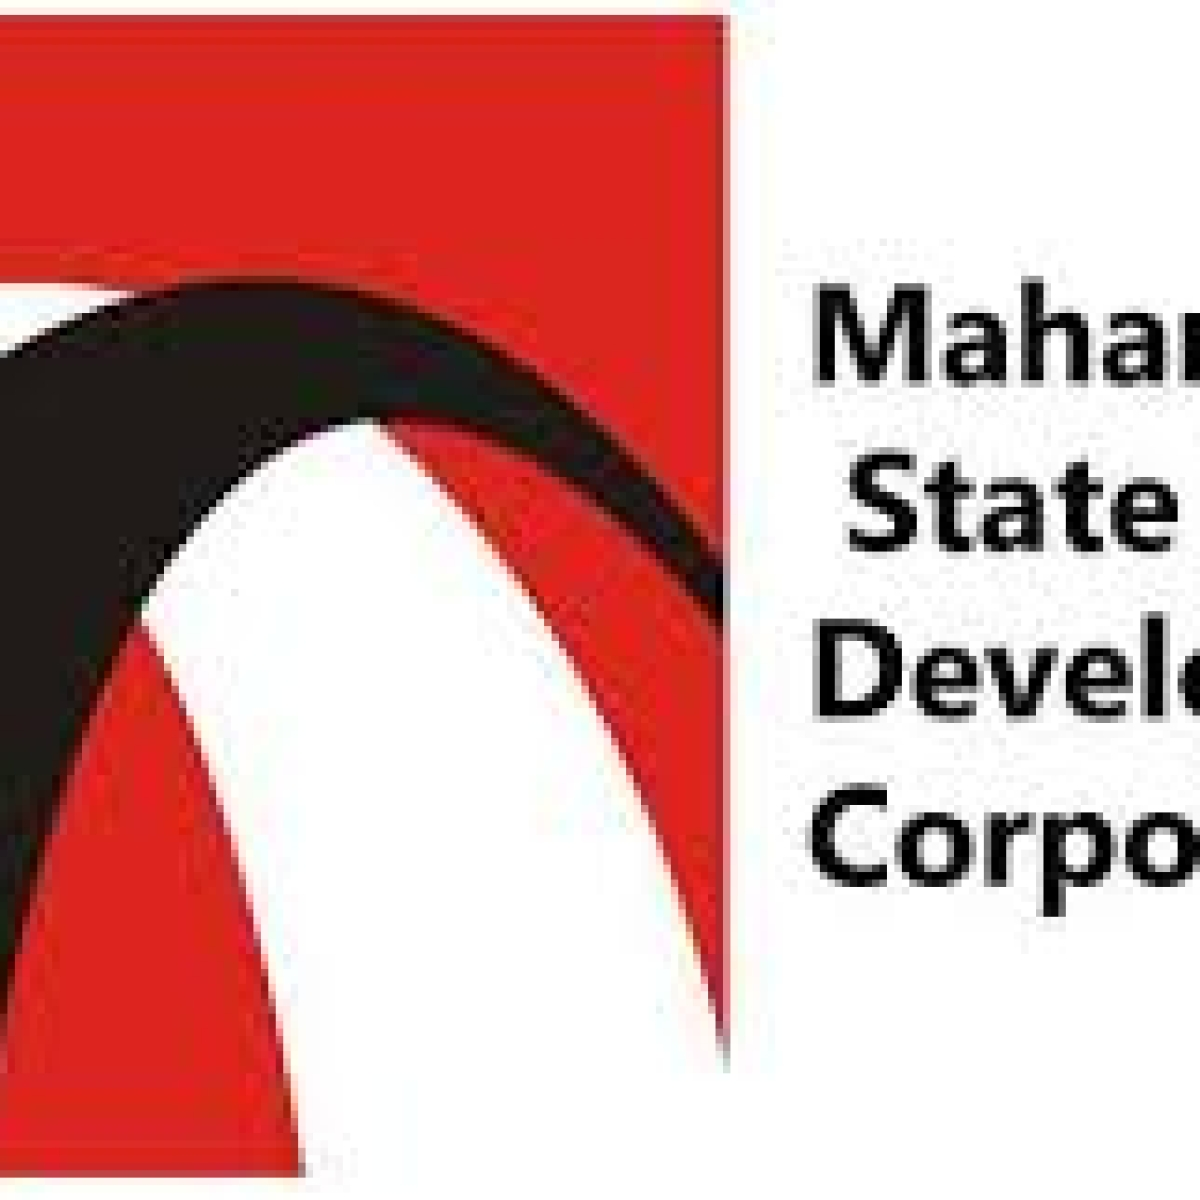 Radheshyam Mopalwar gets fourth extension as MSRDC VC and MD up to May 2021